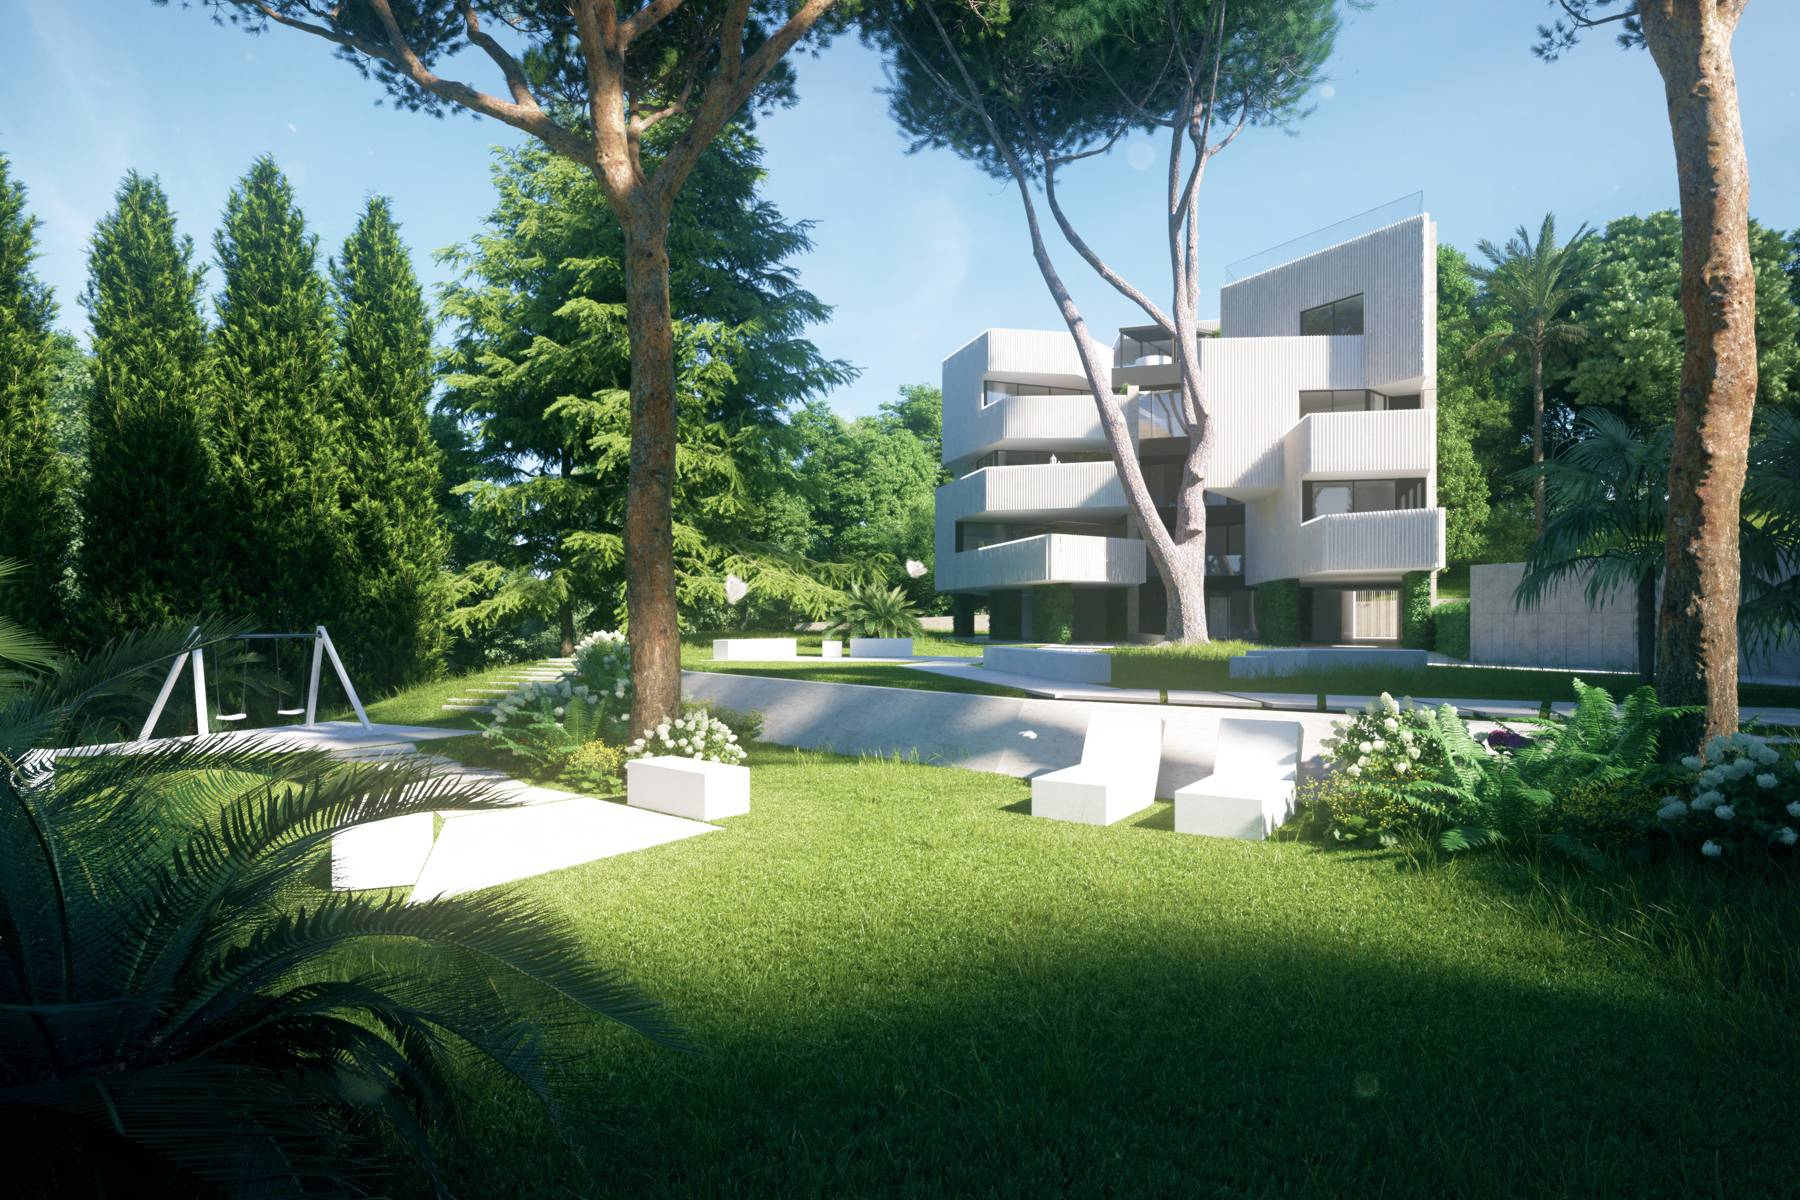 Camilluccia 535: the quiet of the countryside in the heart of Rome - Penthouse - 2